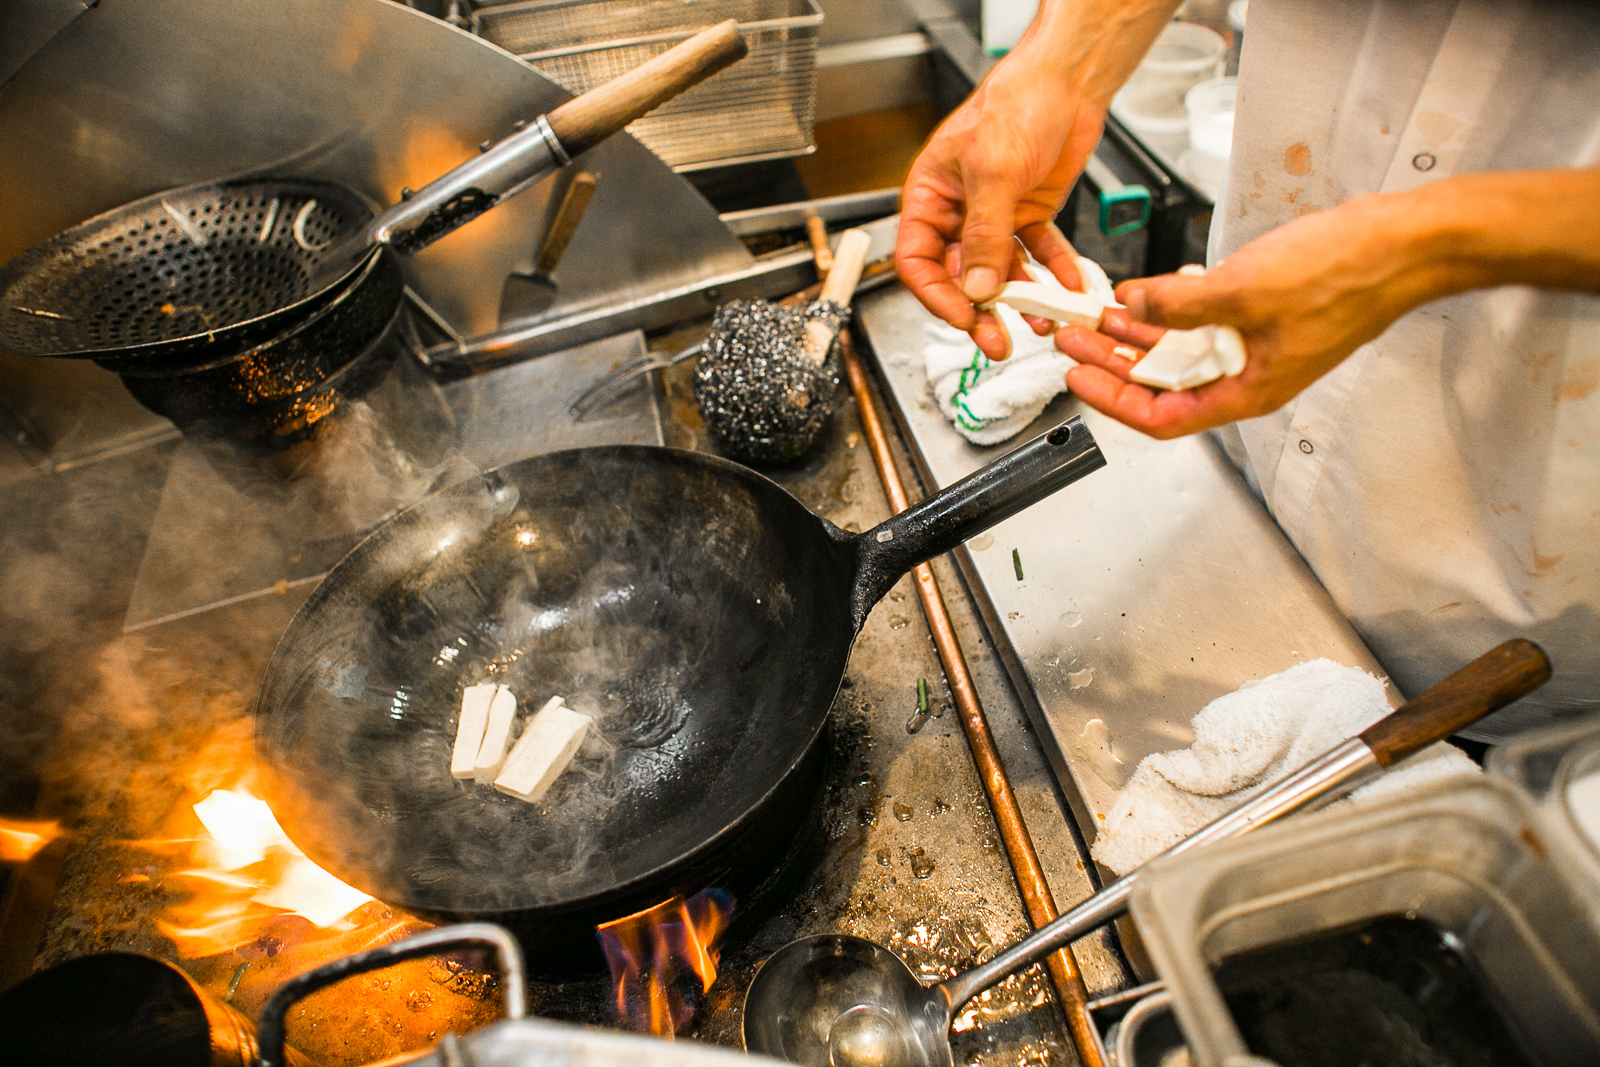 Chef Charles Clarke prepares Shanti Tofu at A Single Pebble Restaurant in Burlington, Vermont on Tuesday, September 13, 2016.